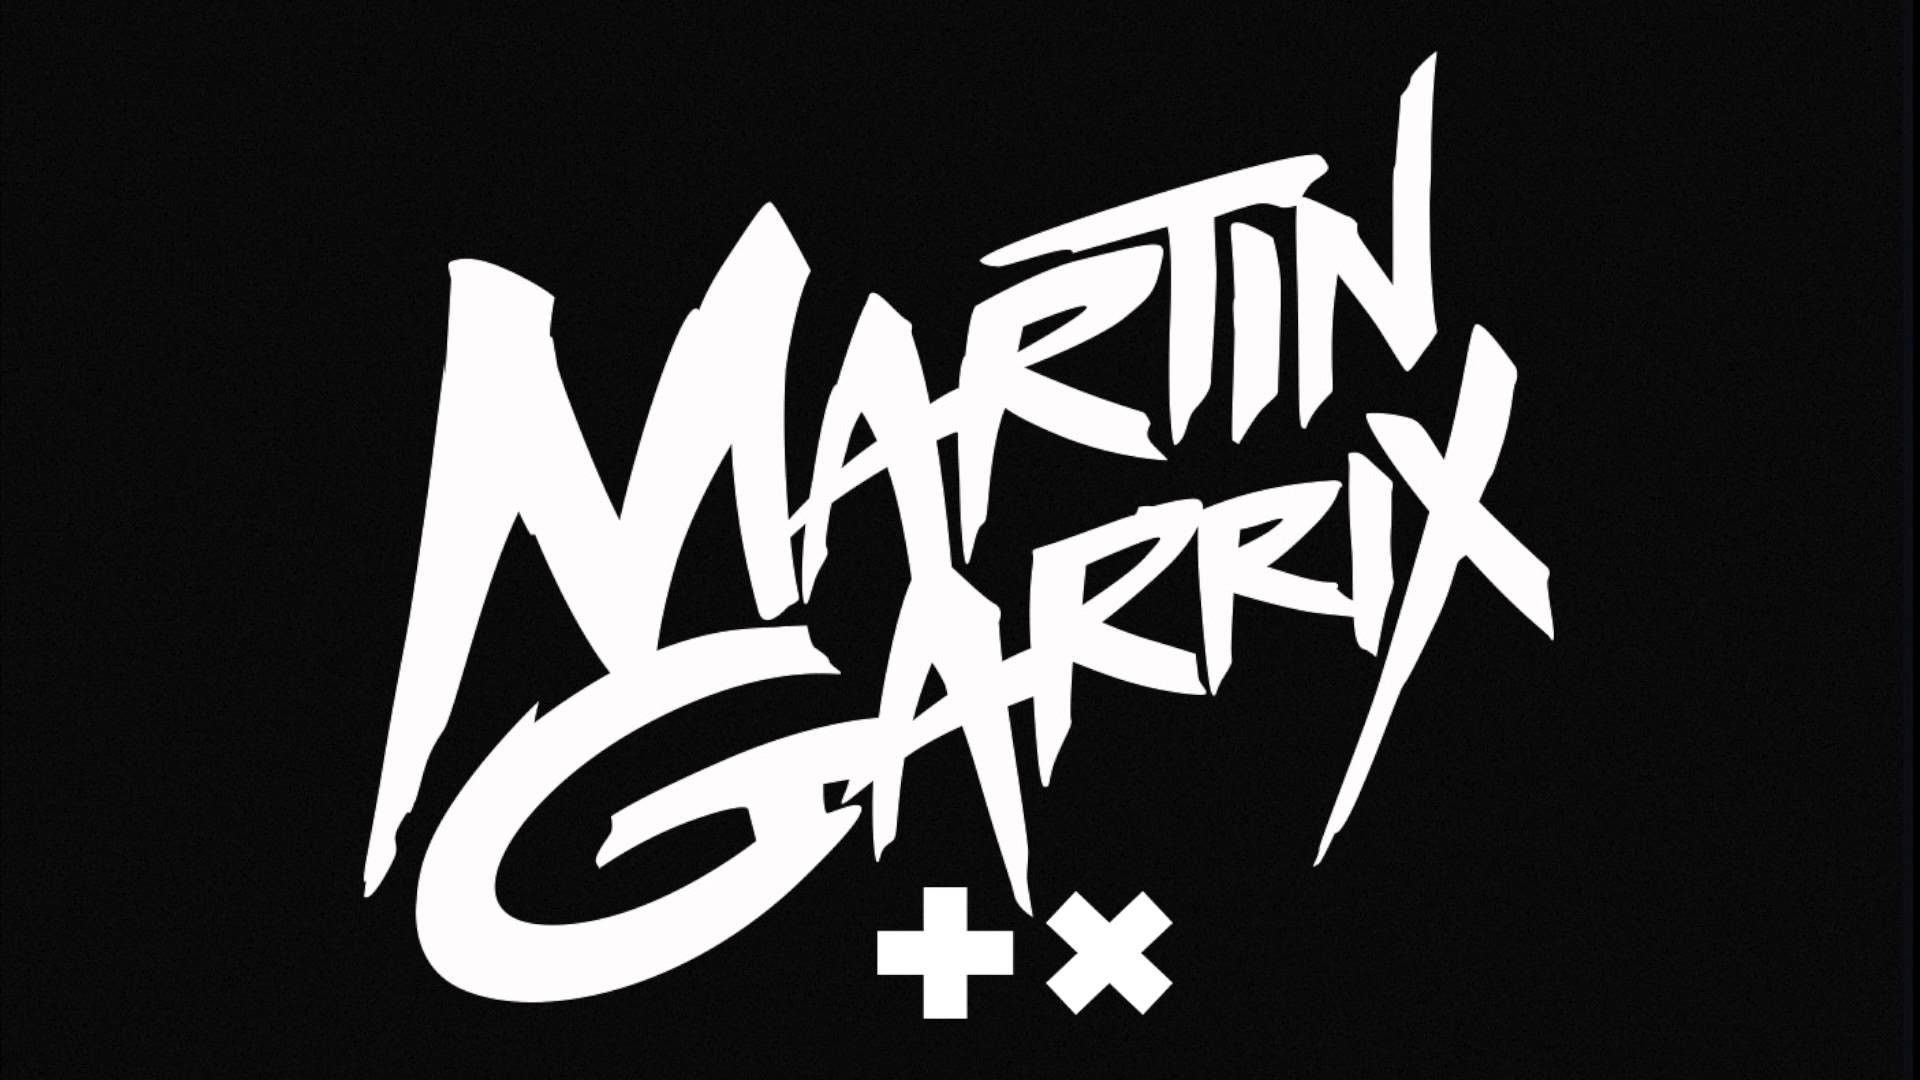 Martin Garrix Logo Wallpapers (67+ fotos)